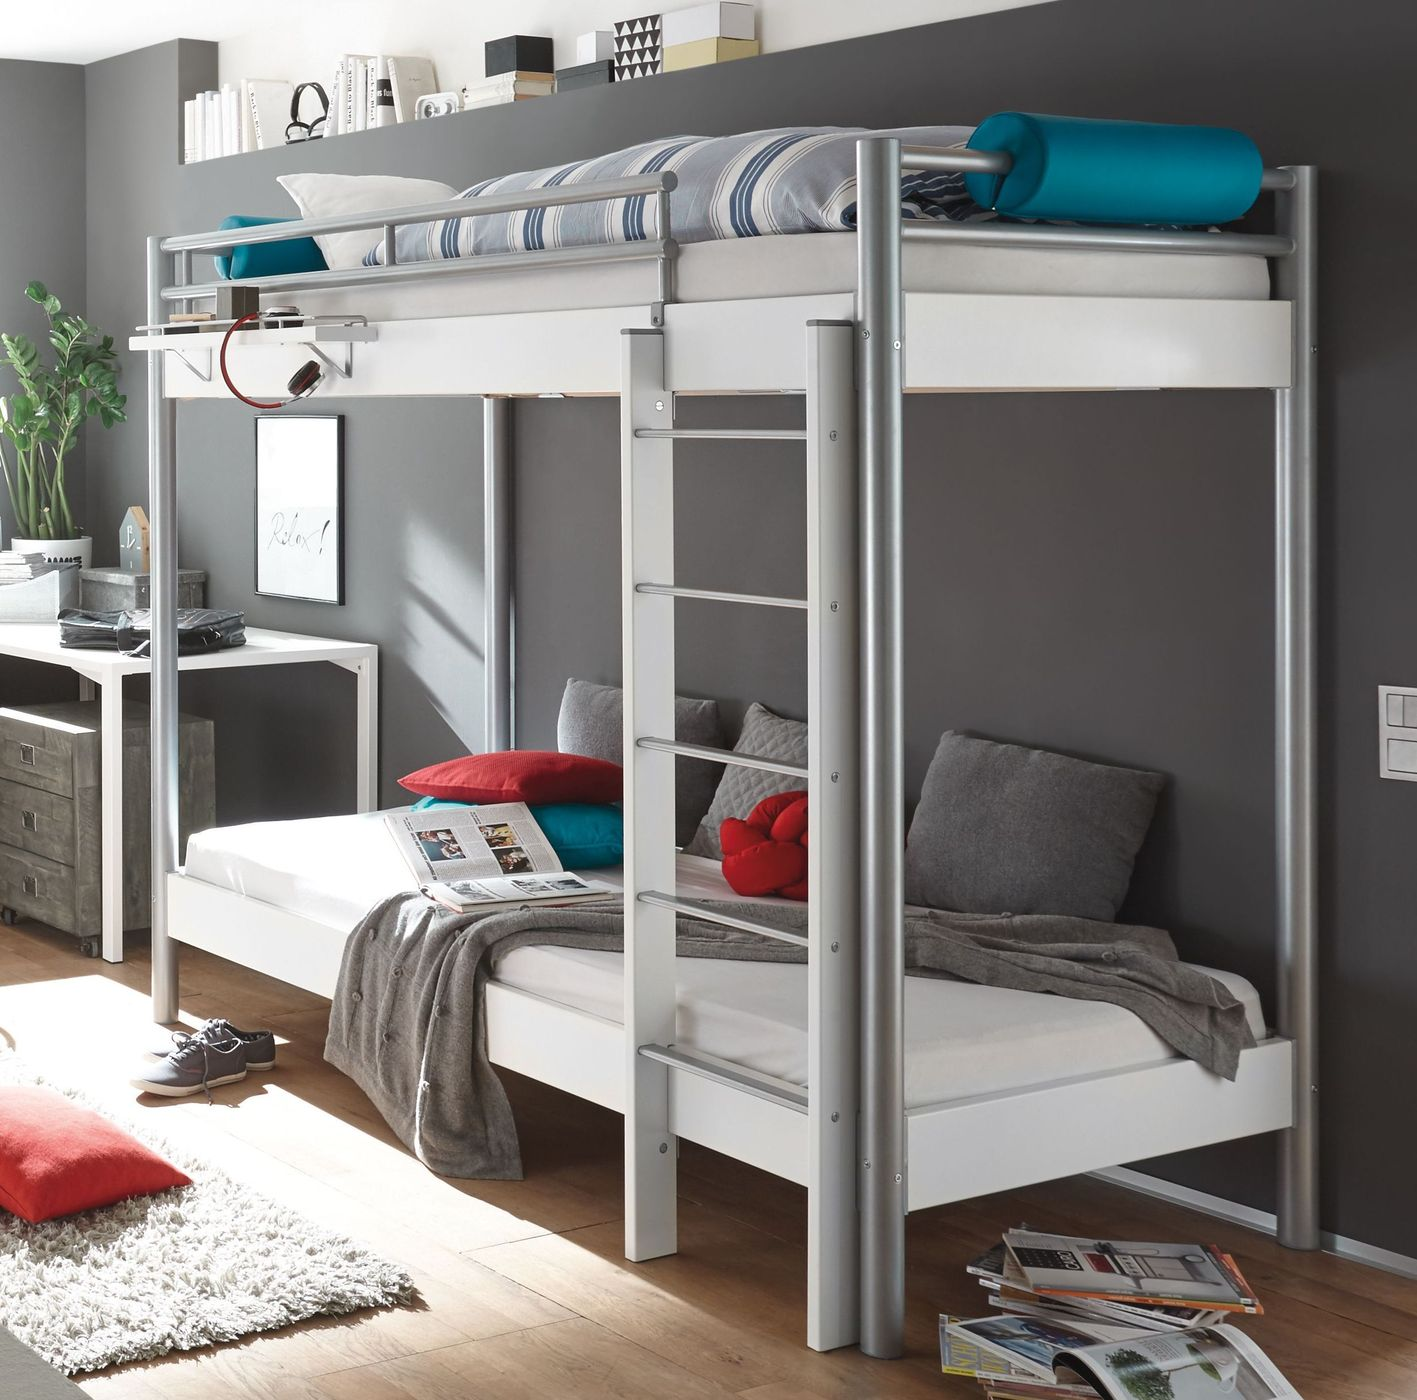 stabiles etagenbett aus metall mit w hlbarem dekor jan. Black Bedroom Furniture Sets. Home Design Ideas